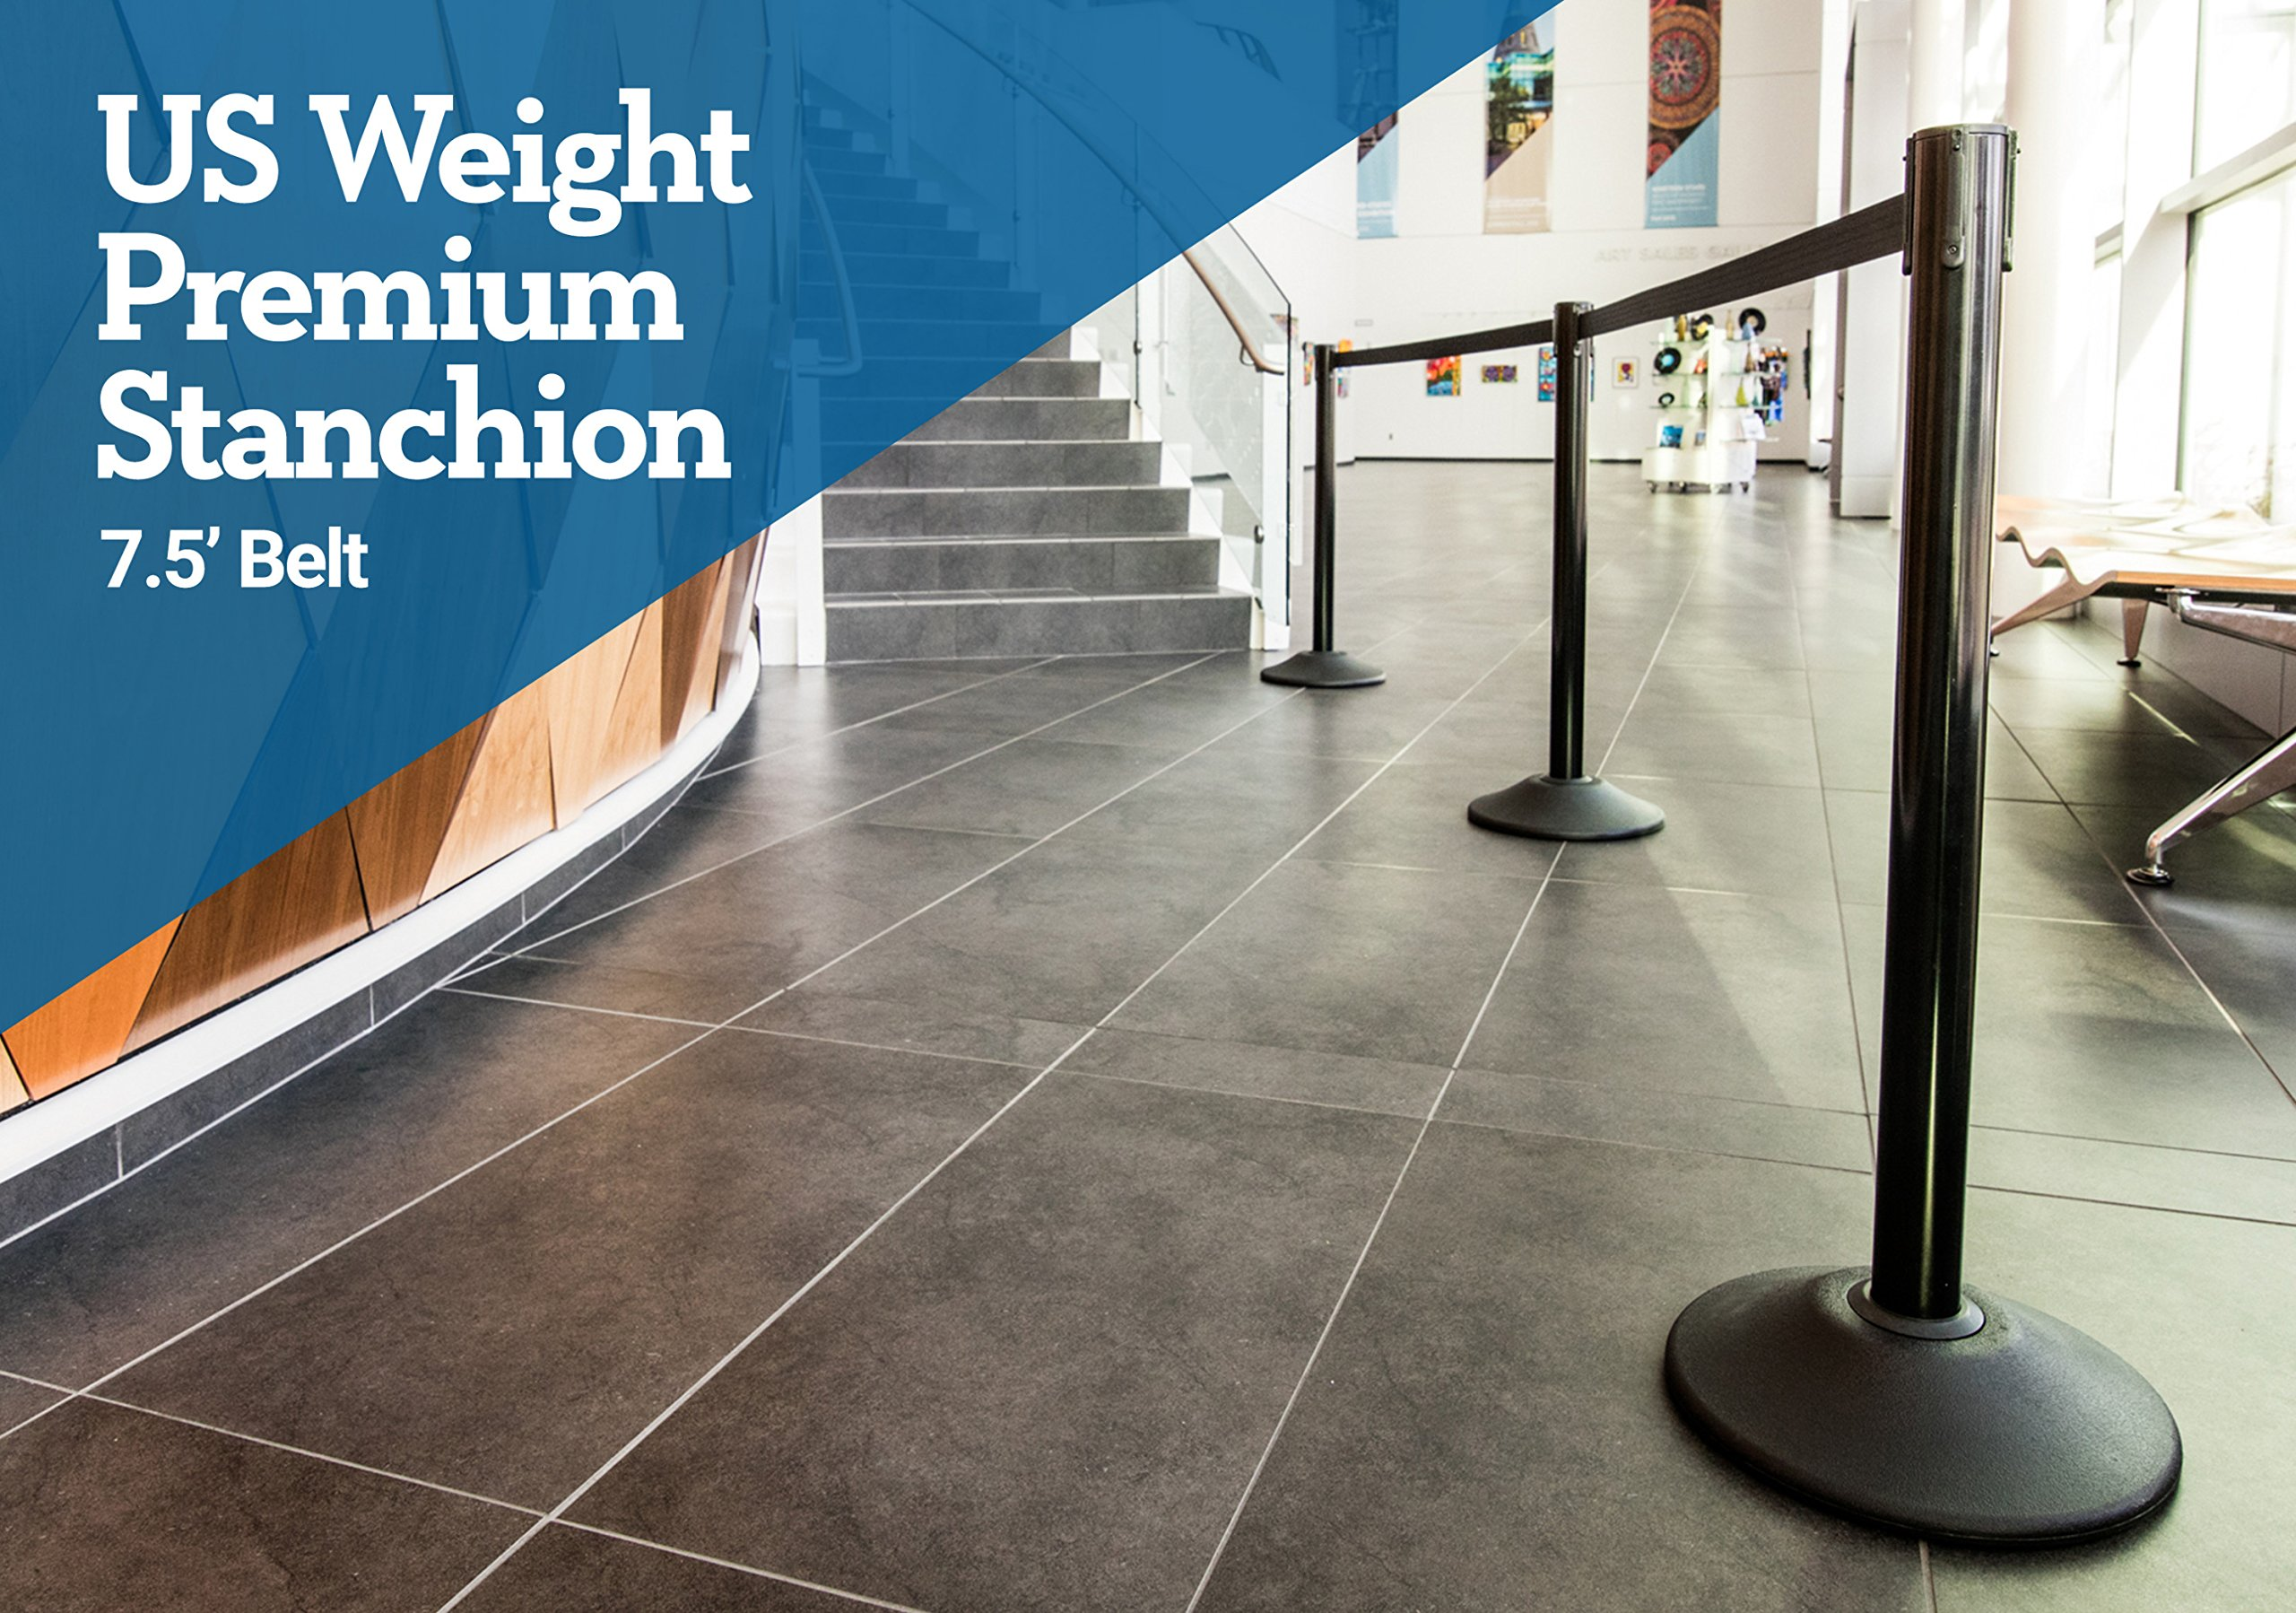 US Weight Heavy Duty Premium Steel Stanchion with 7.5-Foot Retractable Belt (More Colors Available) by US Weight (Image #2)